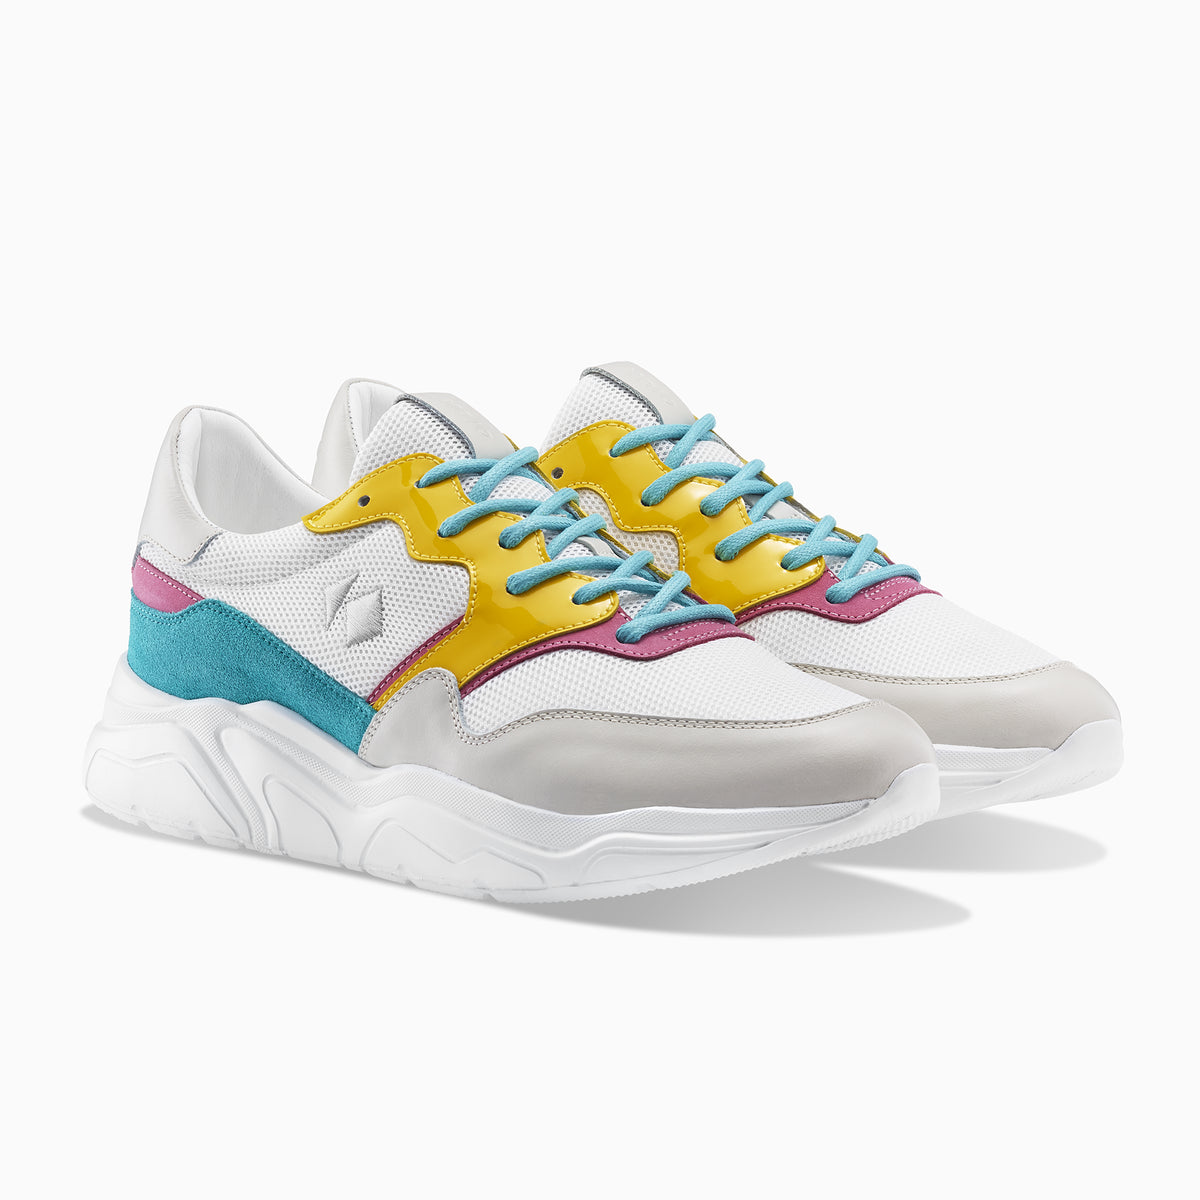 a9fef0c6af864 Men's Low Top Sneaker | Koio Avalanche Rad – KOIO